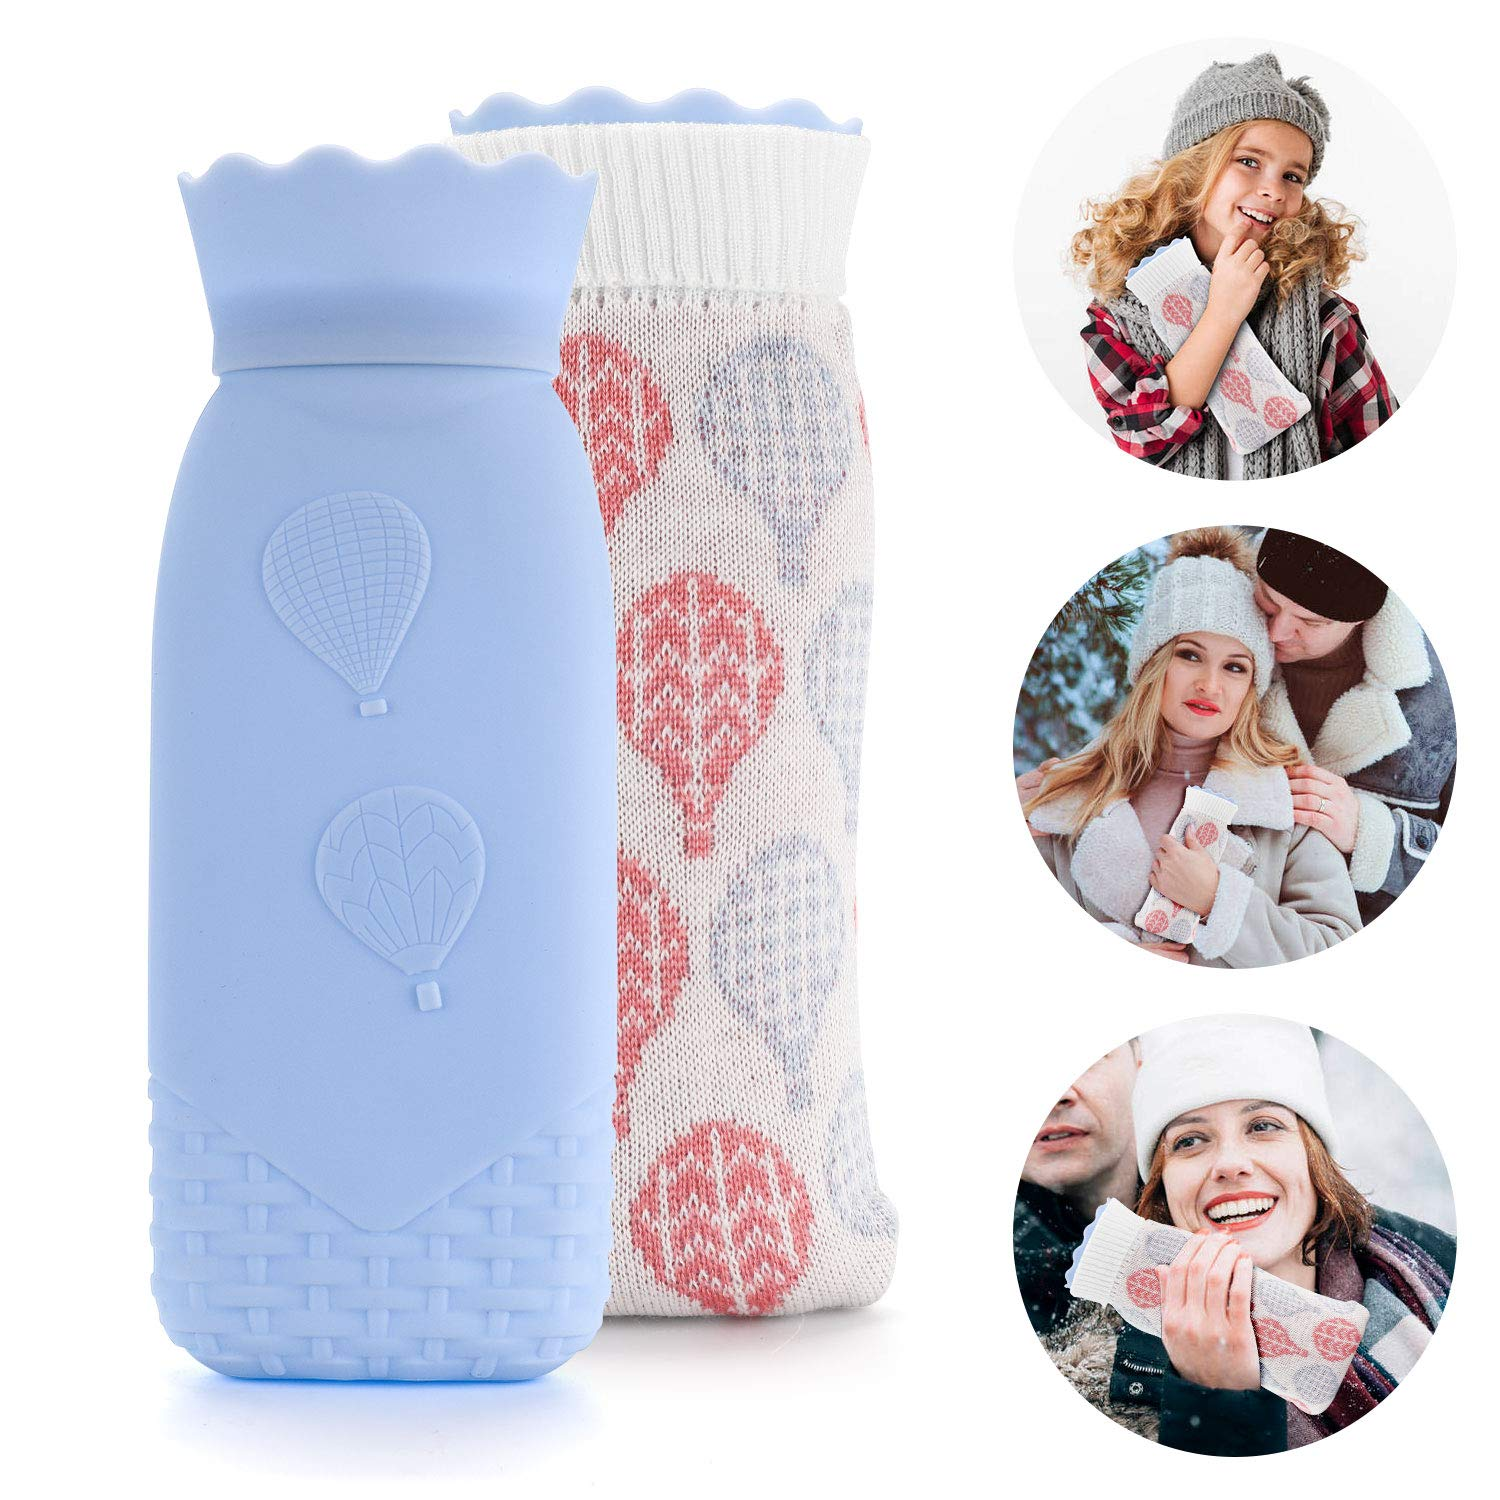 AEM-02 Hot Water Bottle Microwave Heating Bottle Environmental Silicone Hot Water Bag with Knit Cover Hot & Cold Therapies Gift for Women Birthday Christmas Valentine's Day